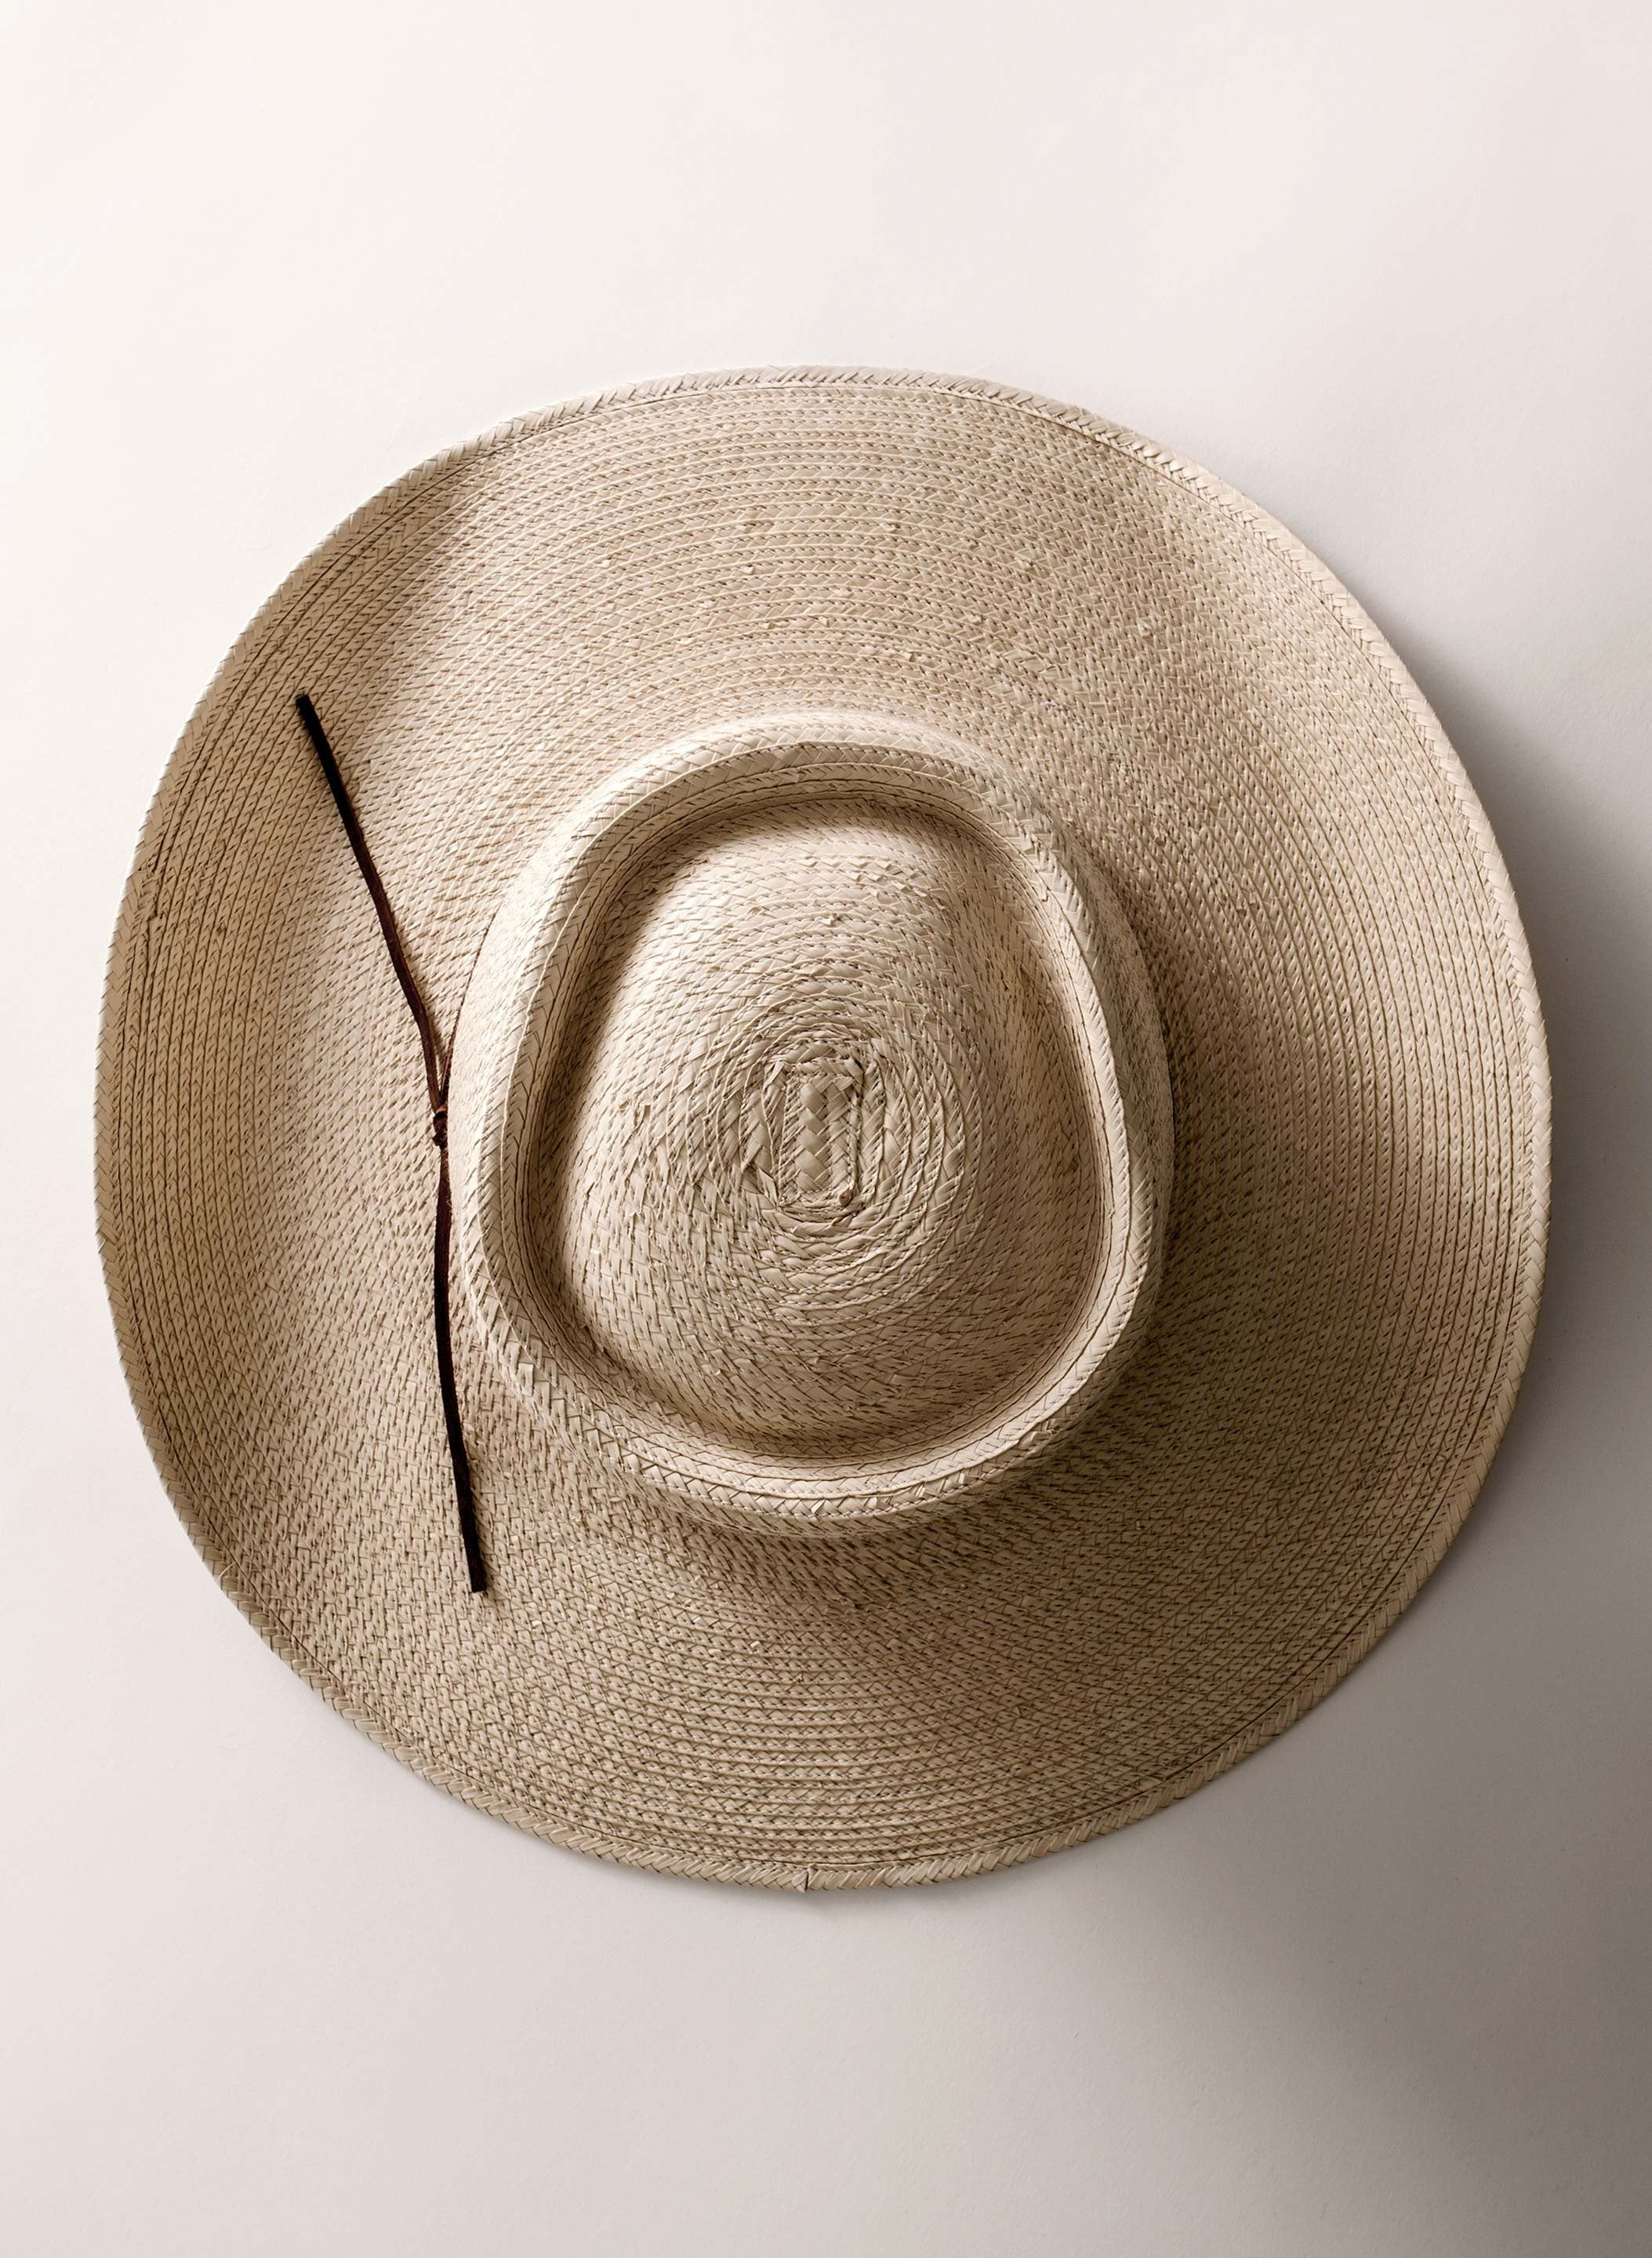 imogene + willie - handwoven reata palm hat